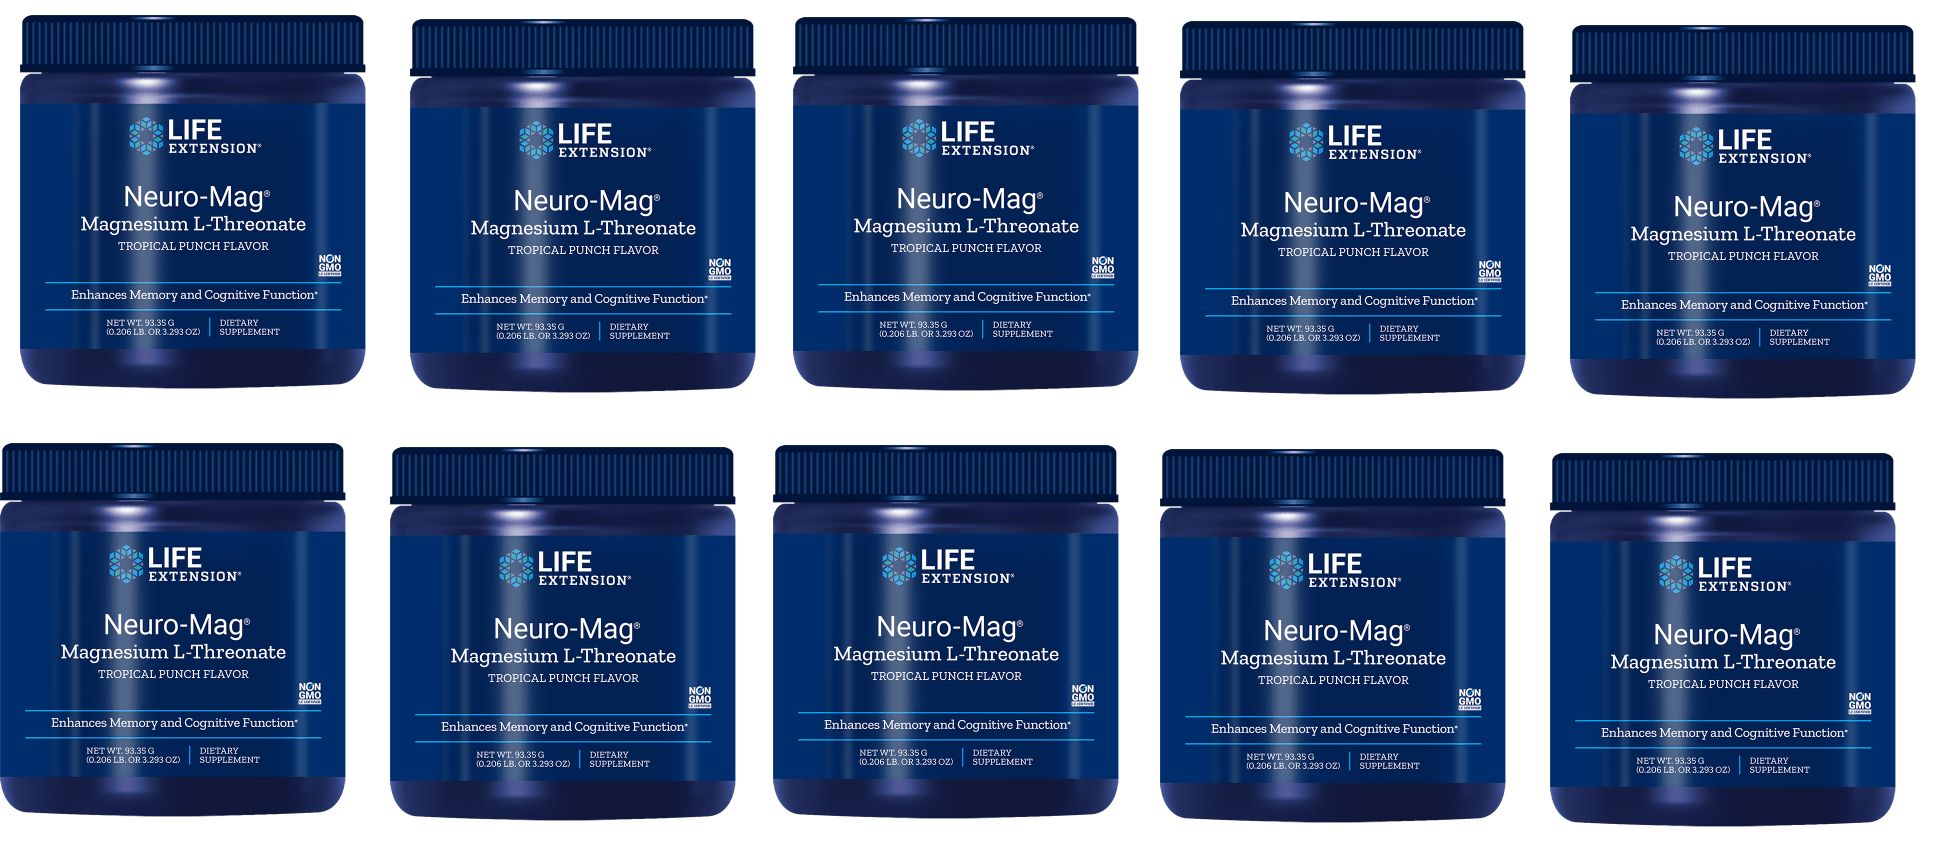 Life Extension Neuro-Mag Magnesium L-Threonate, Tropical Punch Flavor, 10-packs